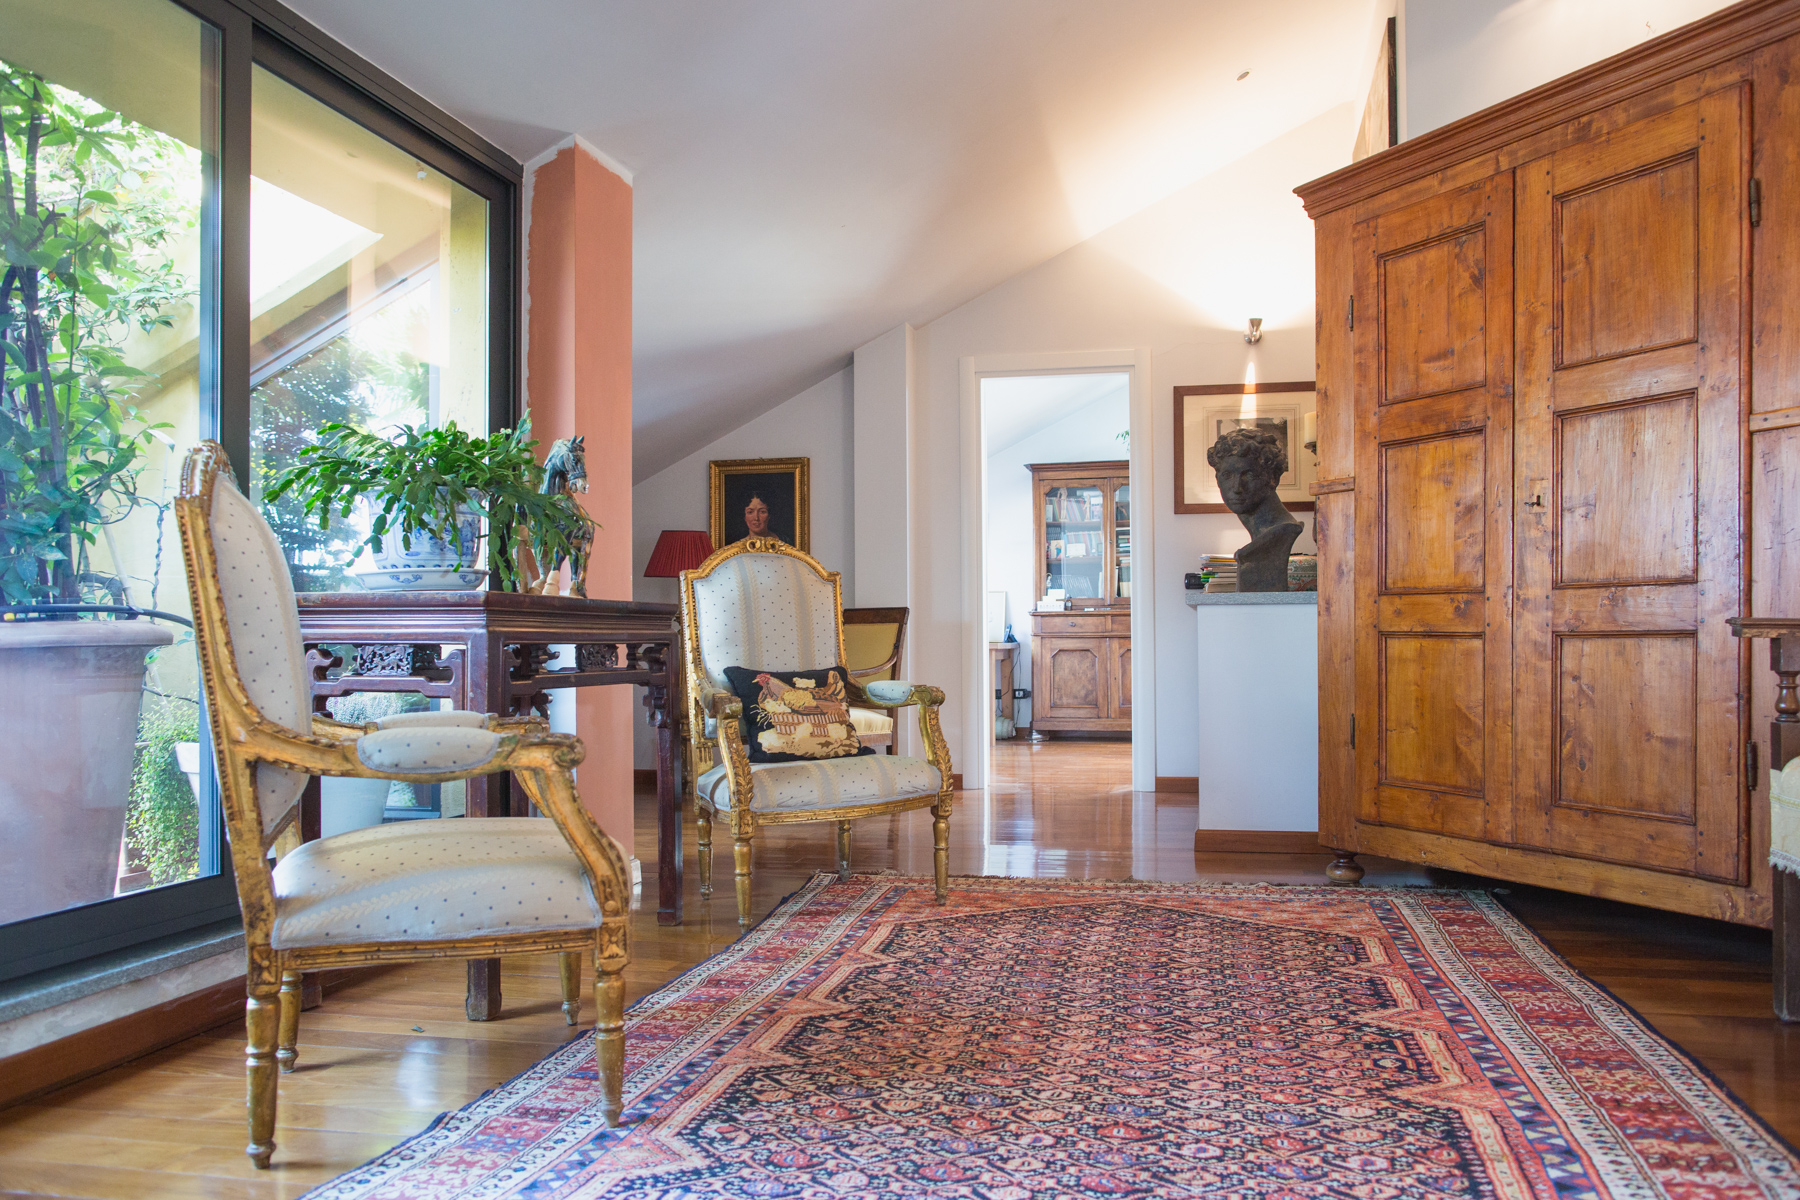 Single Family Home for Sale at Panoramic attic overlooking the hill of Turin Piazza Nizza Turin, 10126 Italy